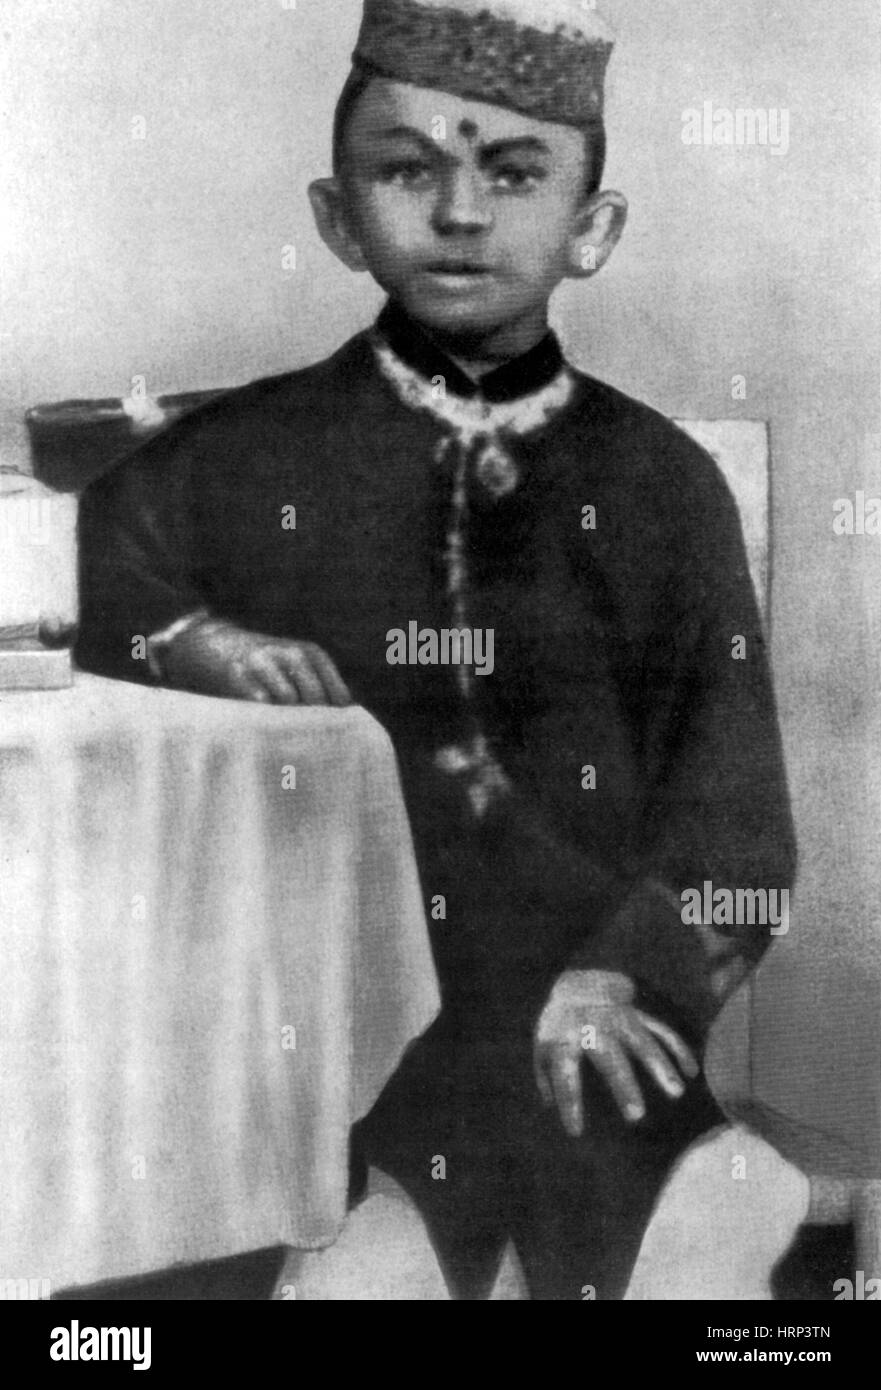 Young Gandhi, 1870s - Stock Image